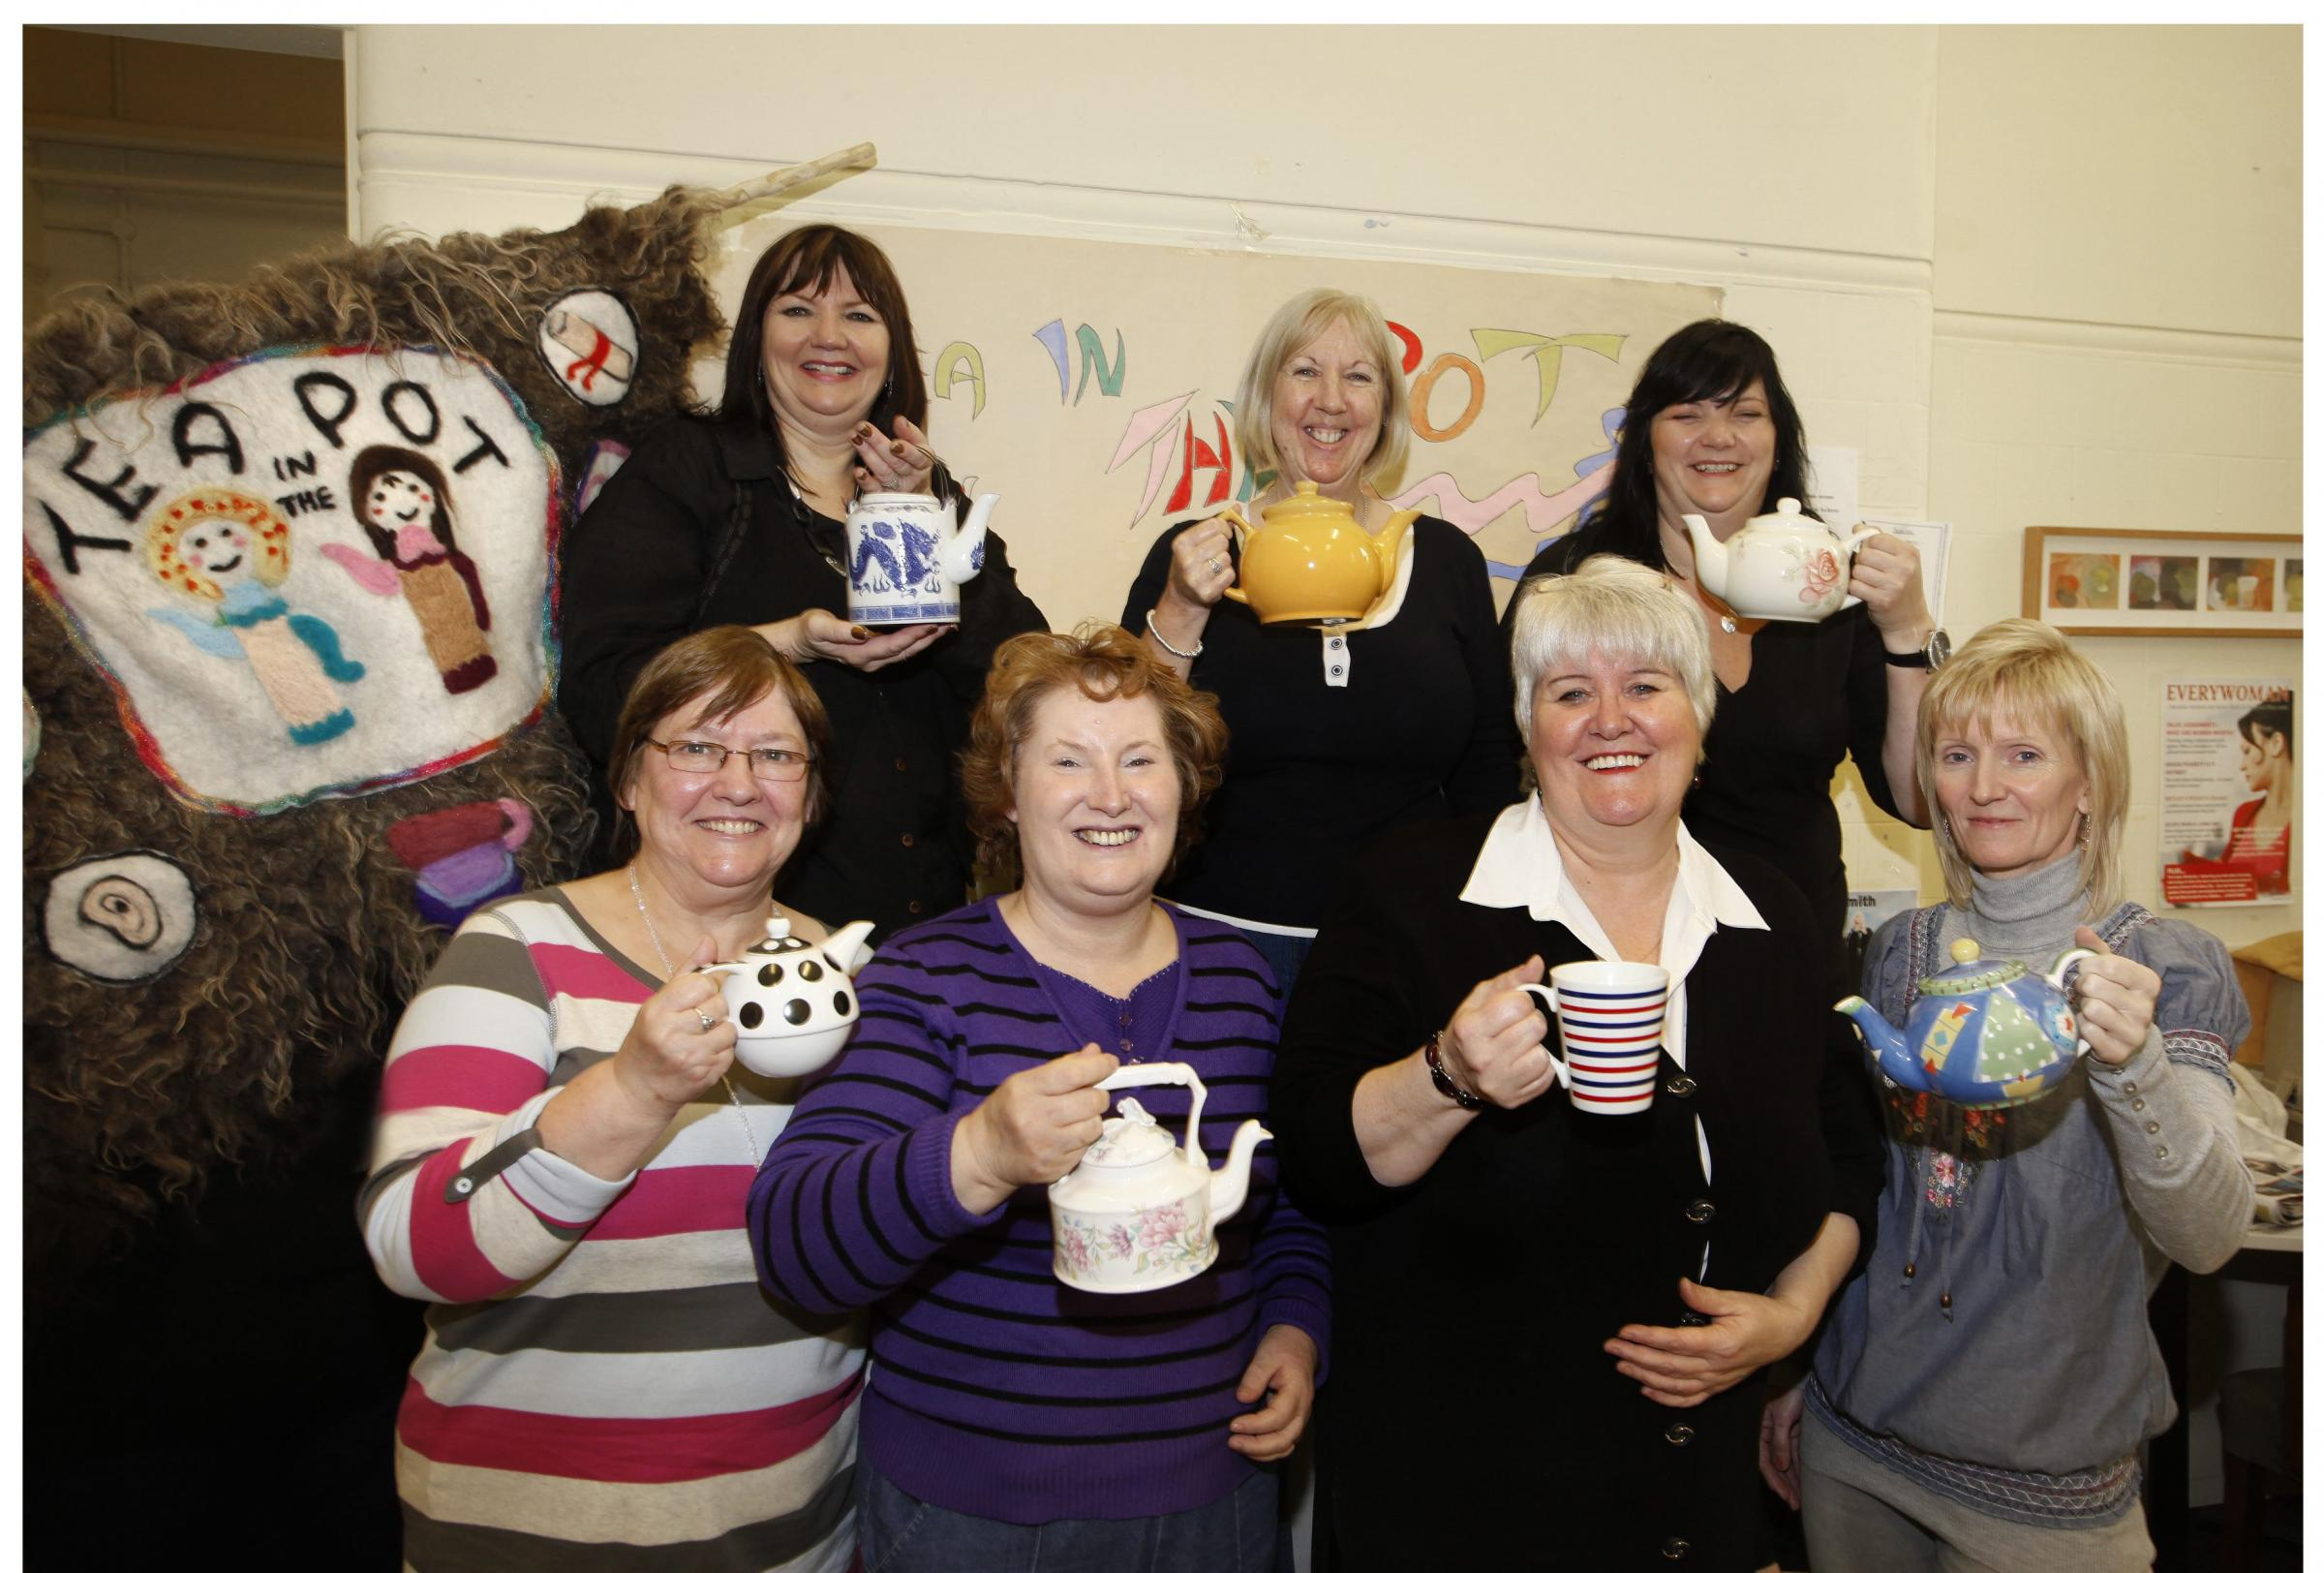 Tea in the Pot was established as a drop-in centre and support service for women